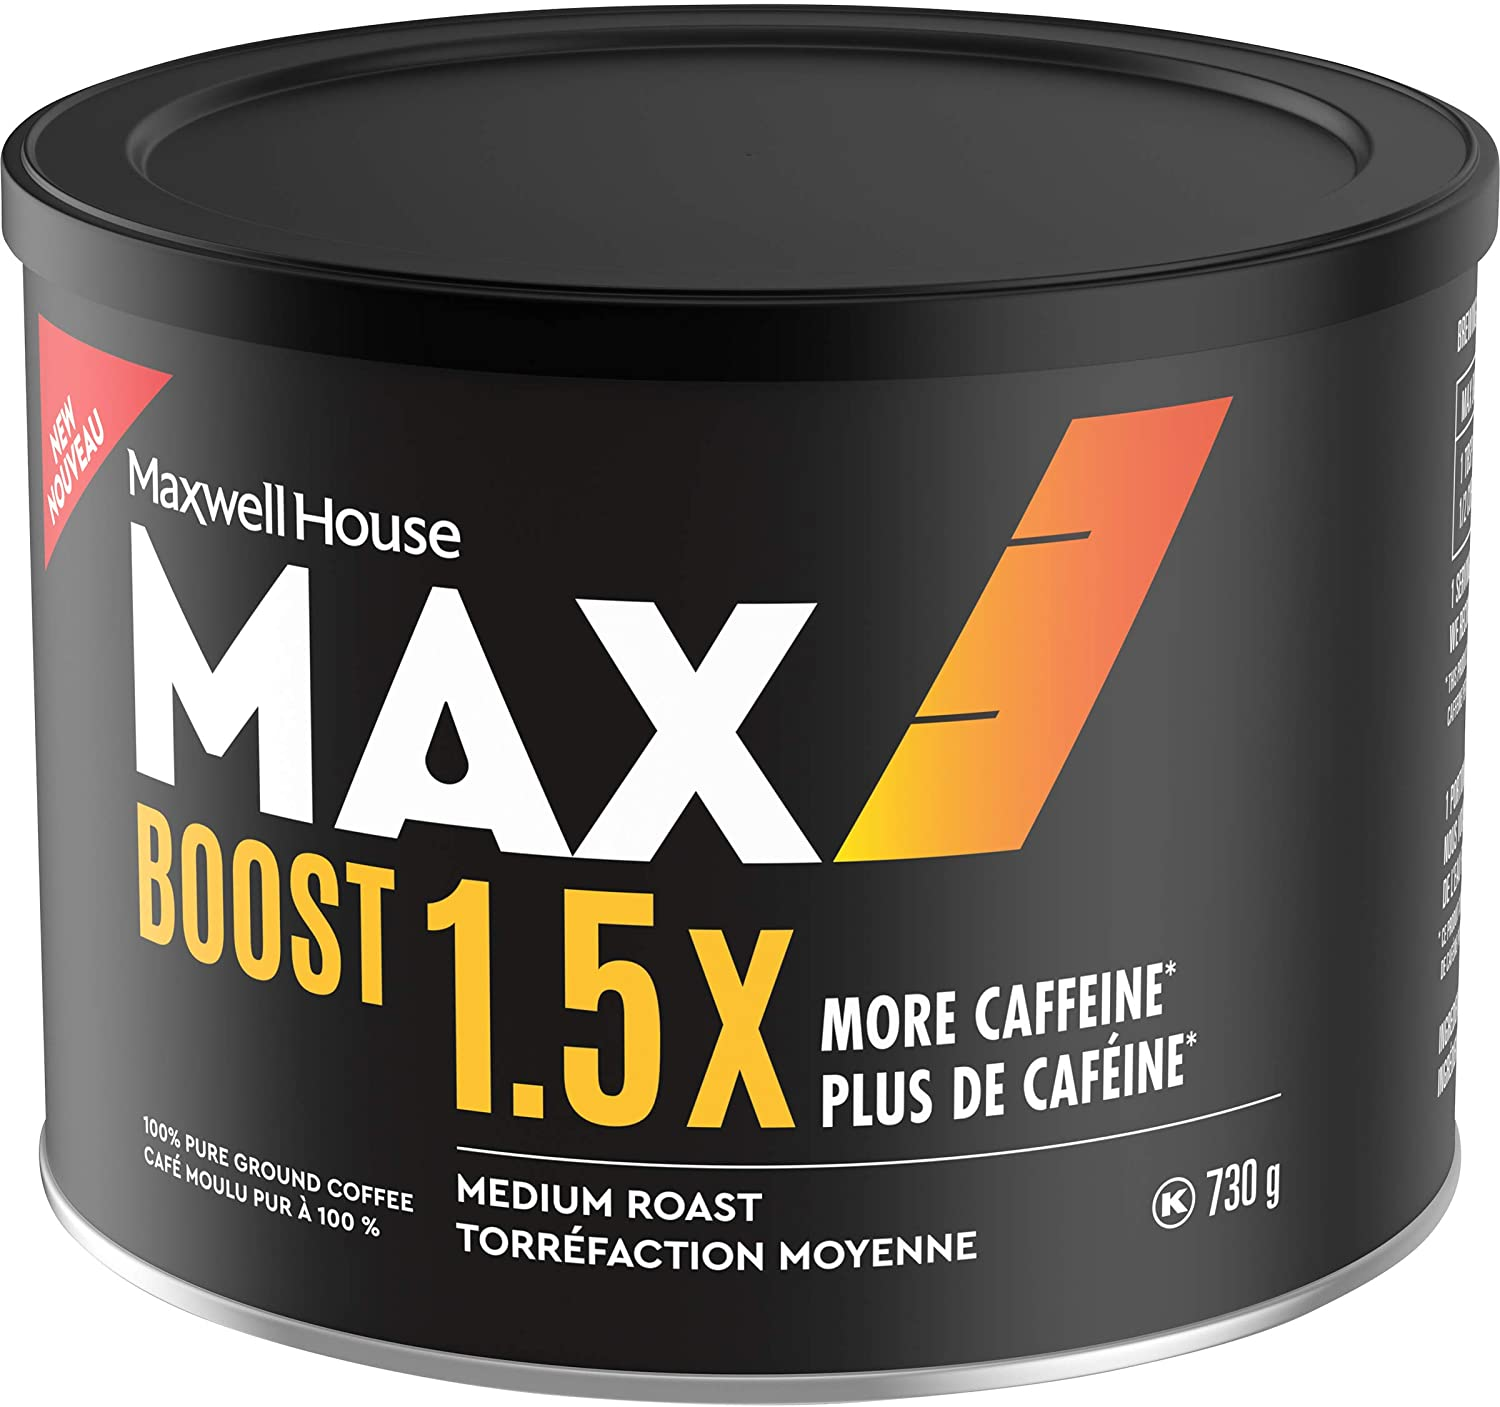 coupon rabais  Café Max Boost